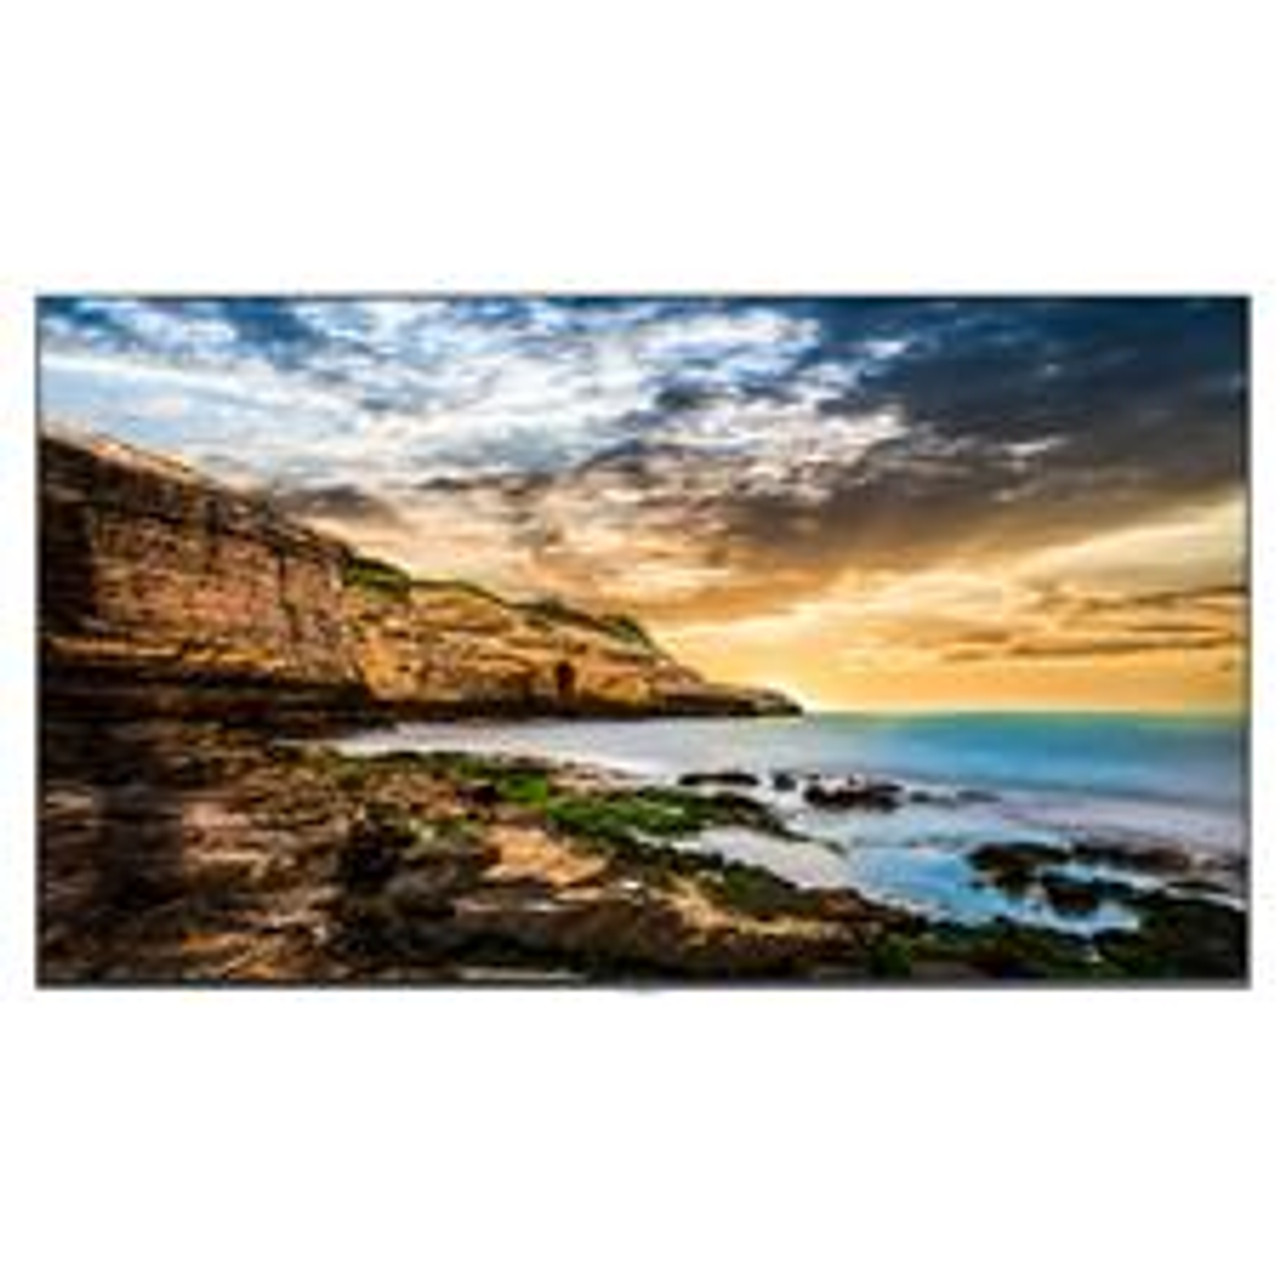 Samsung QE82T 82in 4K UHD 16/7 300nit Commercial Display